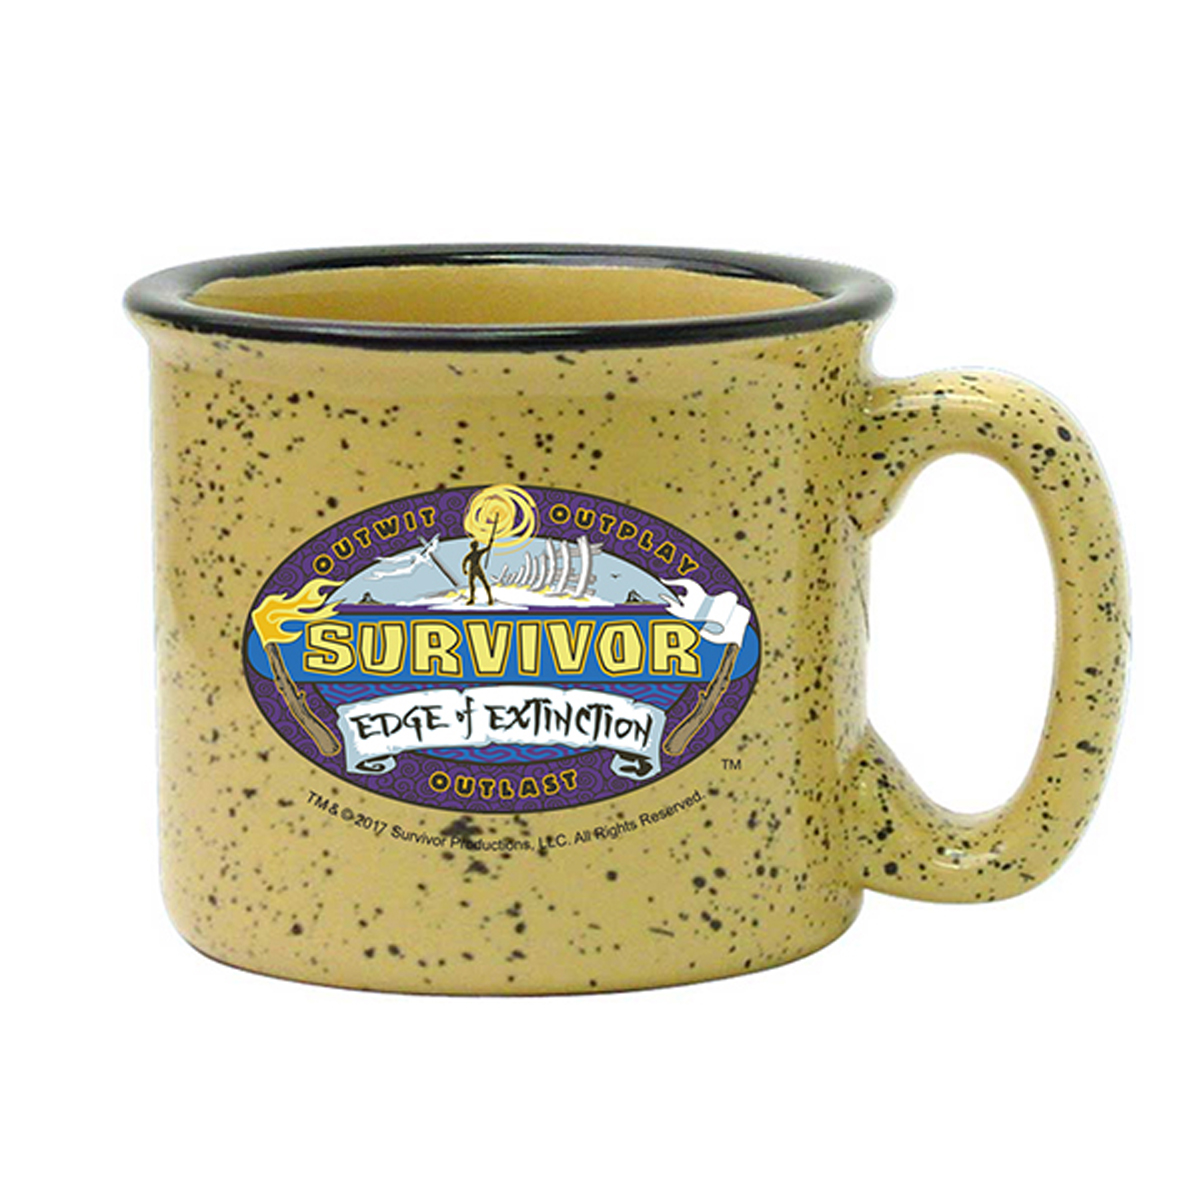 Survivor Season 38 Campfire Mug